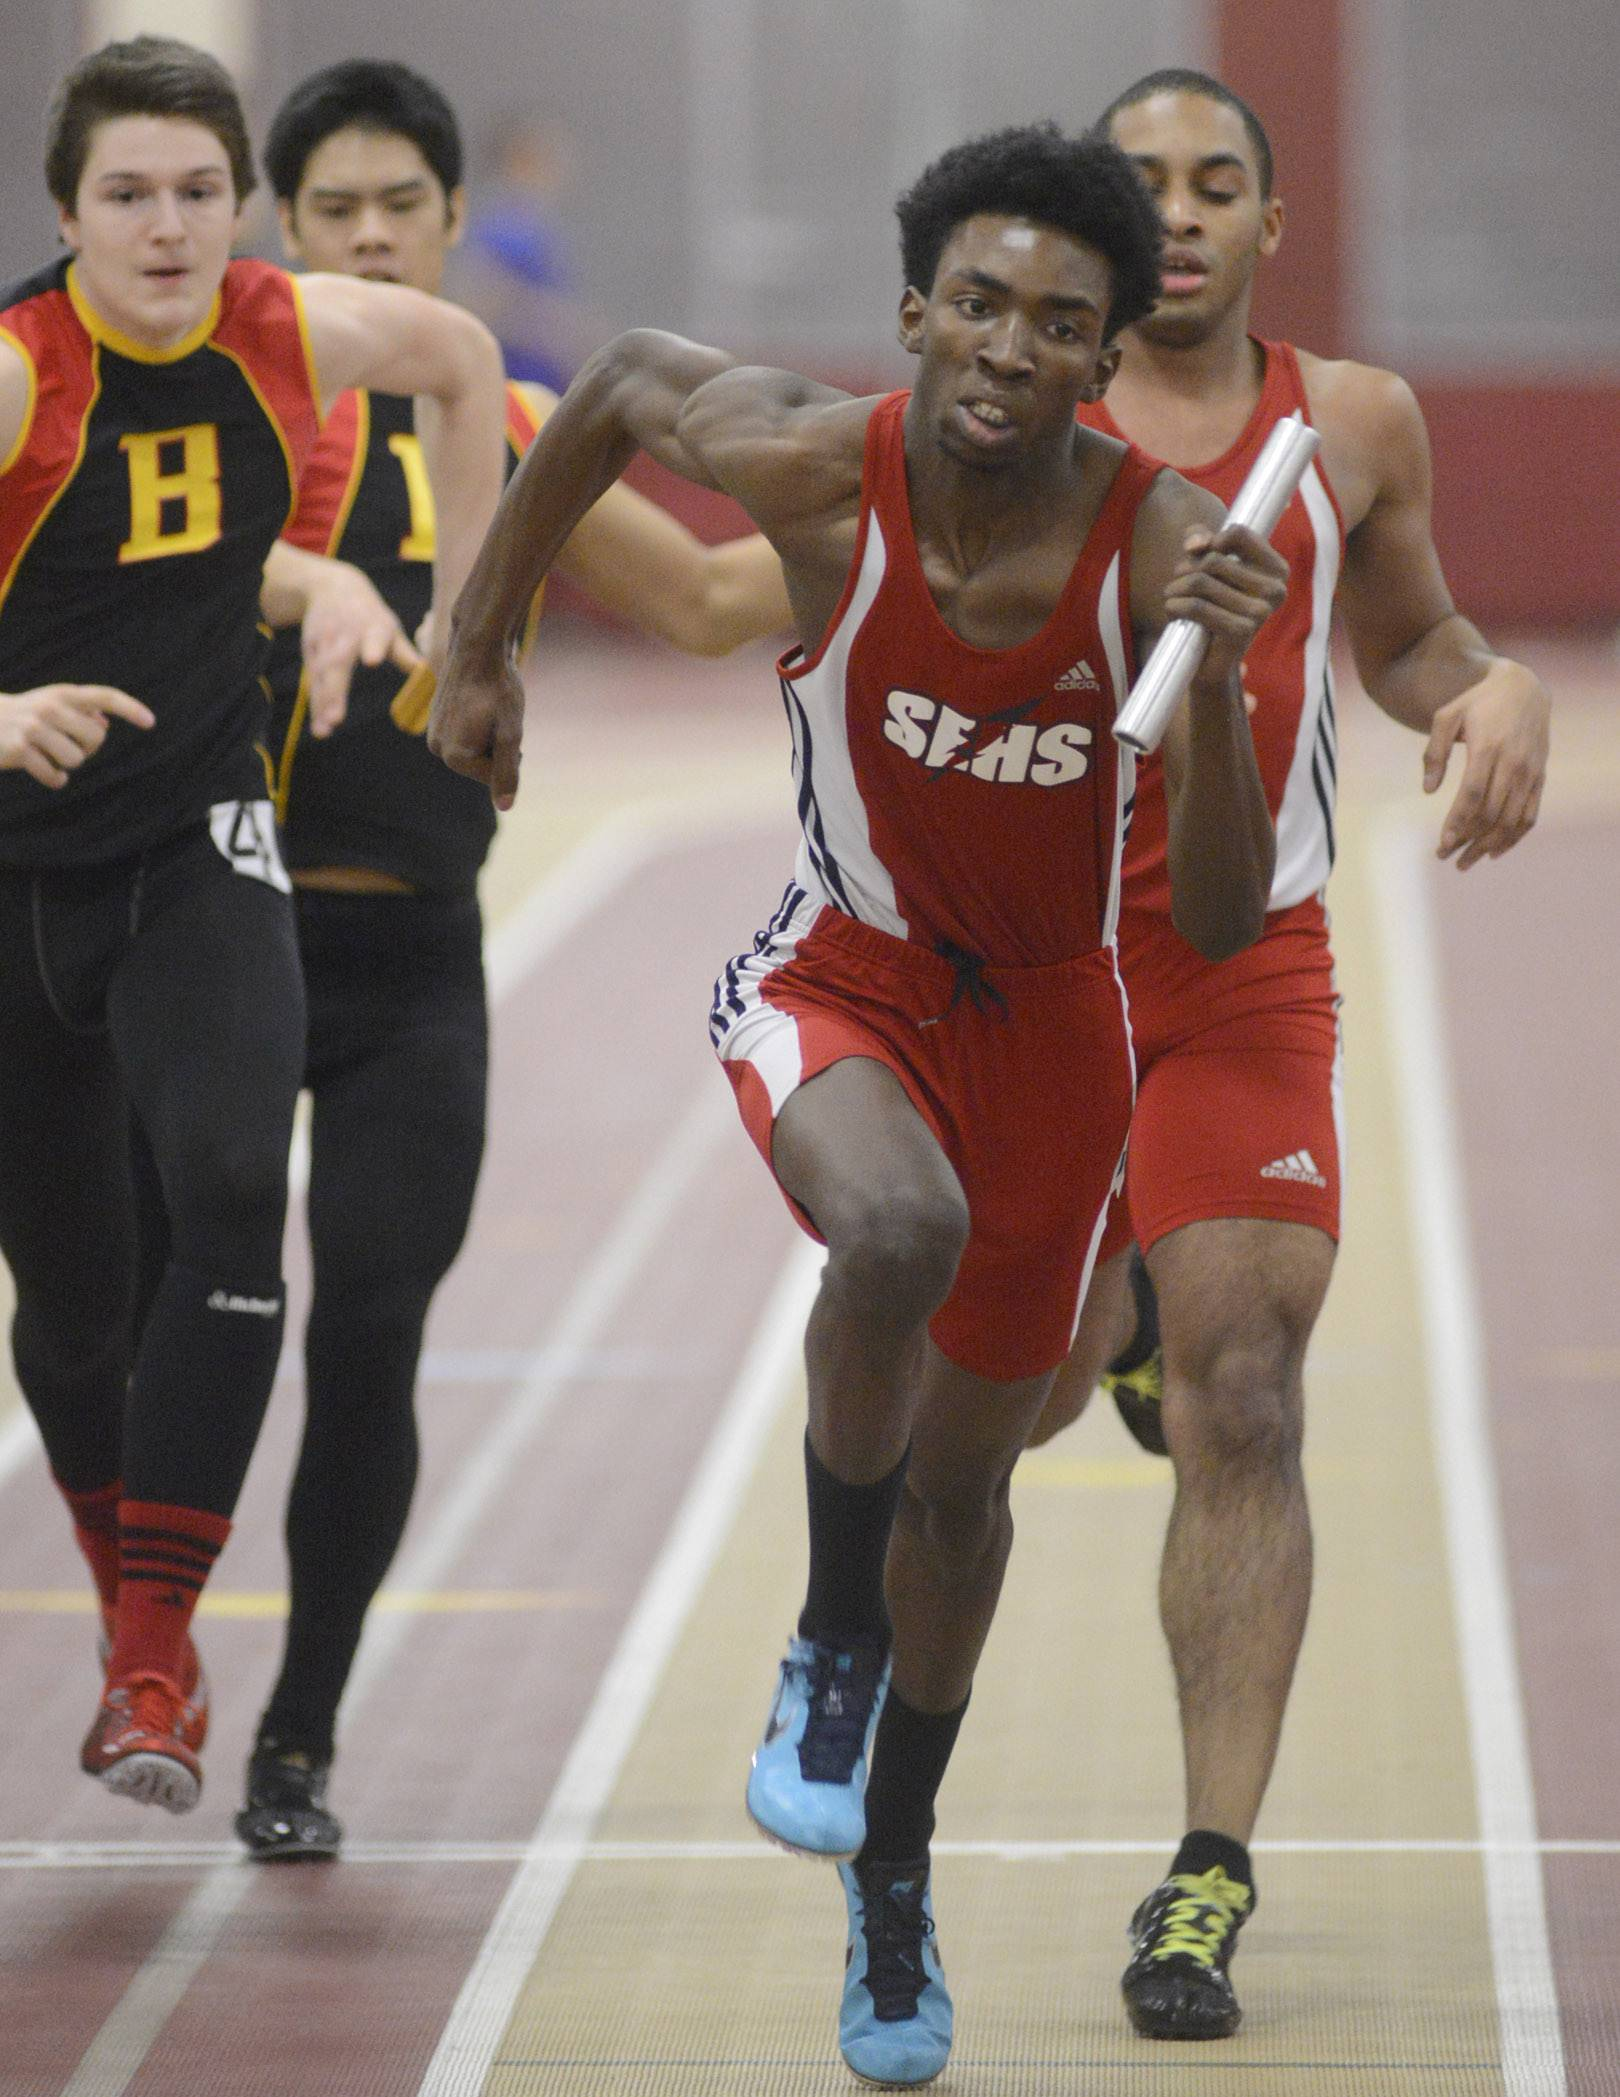 South Elgin's Marshawn Lewis is handed the baton from teammate James Dockens in the final heat of the 4 x 200 meter relay at the Upstate Eight Conference in Batavia on Friday.